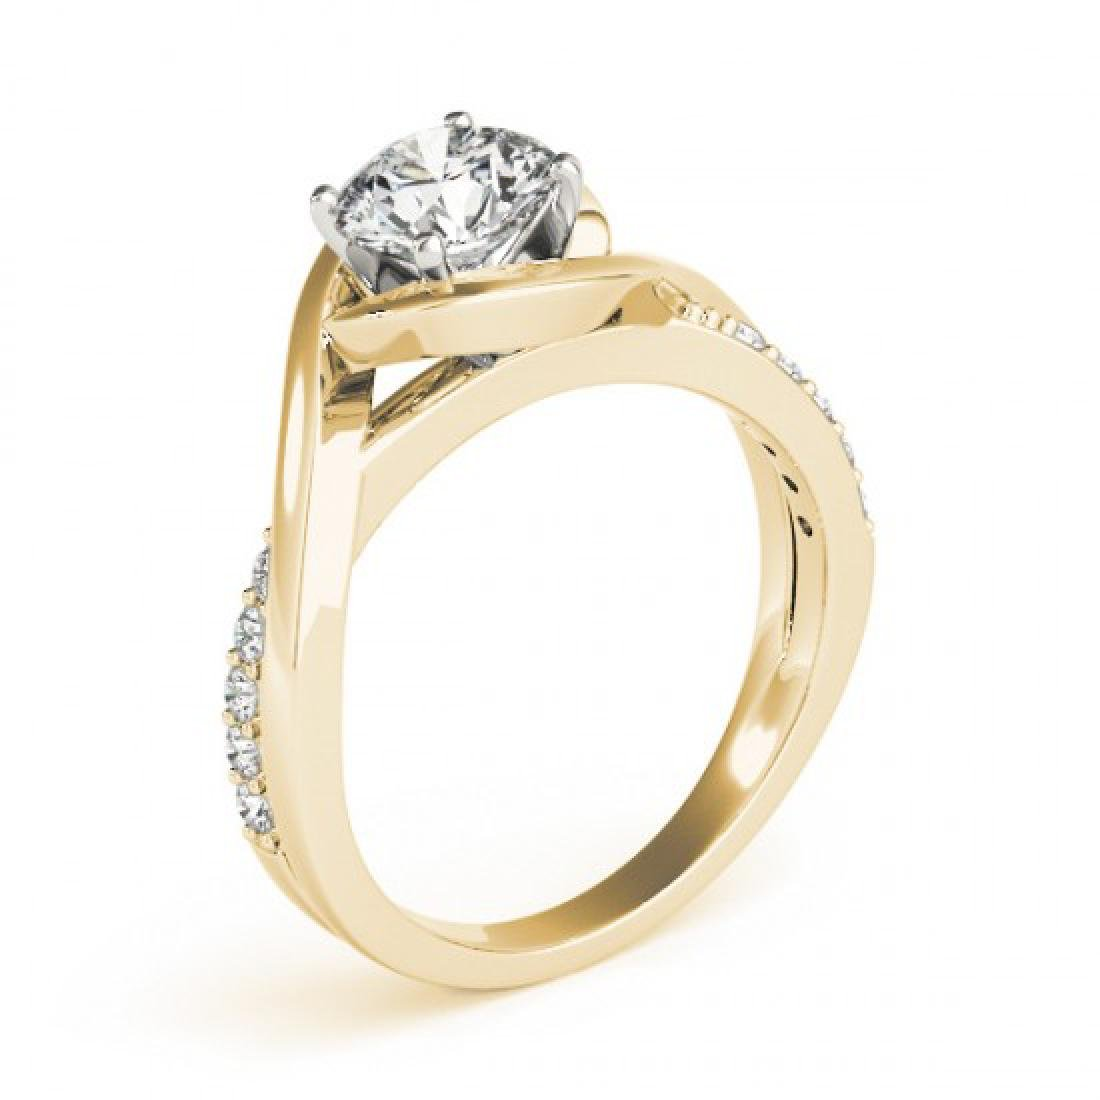 0.9 CTW Certified VS/SI Diamond Solitaire Ring 14K - 3